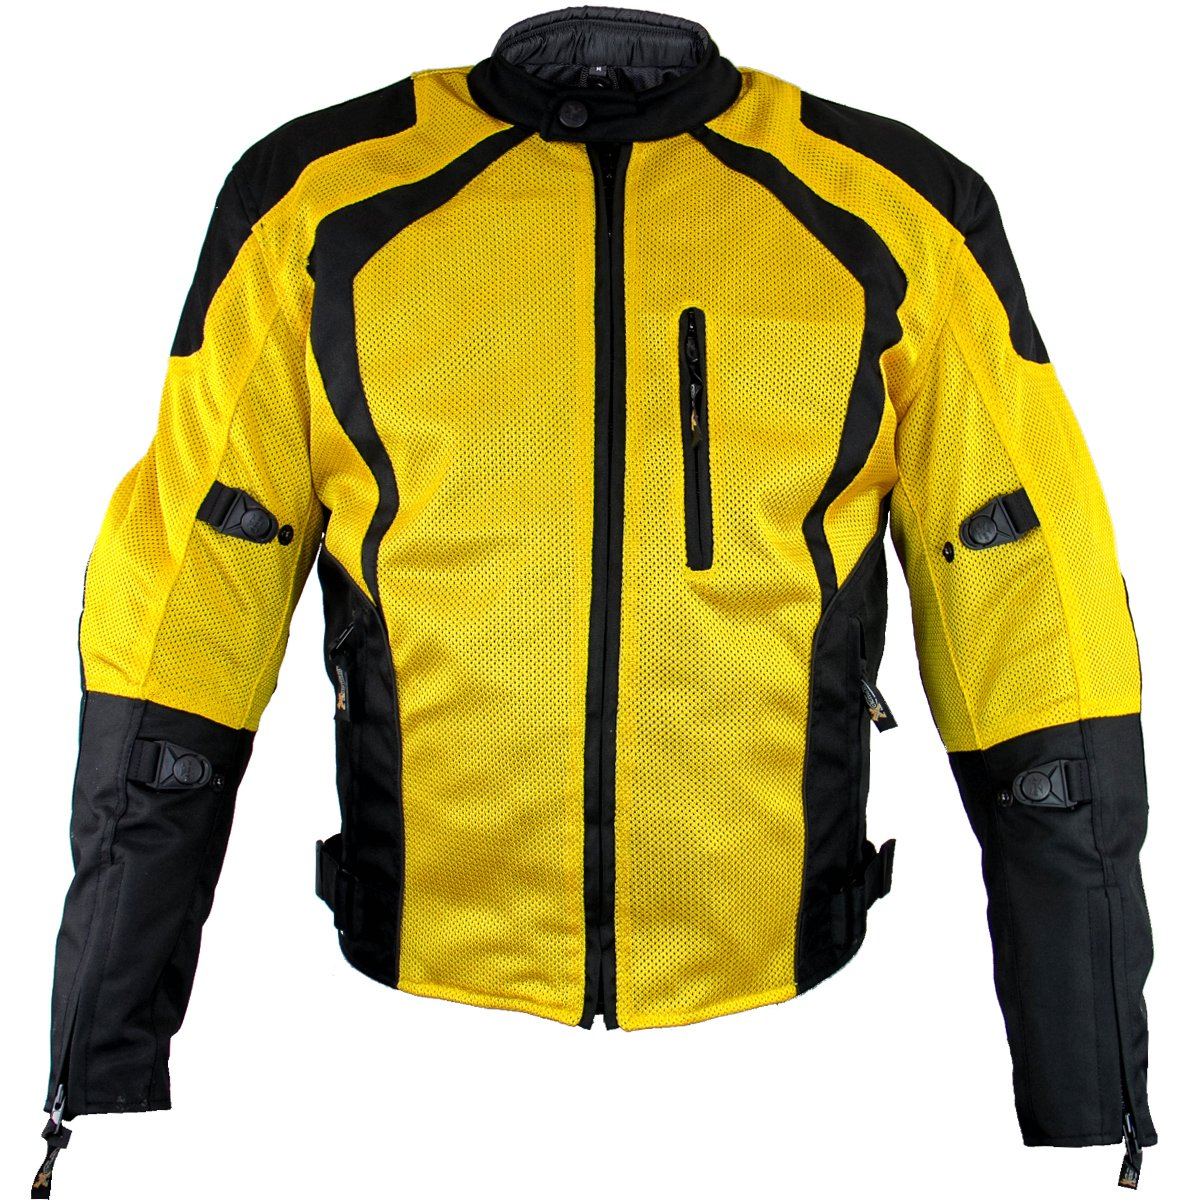 Xelement XS3025 Cyclone Mens Black/Yellow Mesh Tri-Tex Armored Motorcycle Jacke - 2X-Large